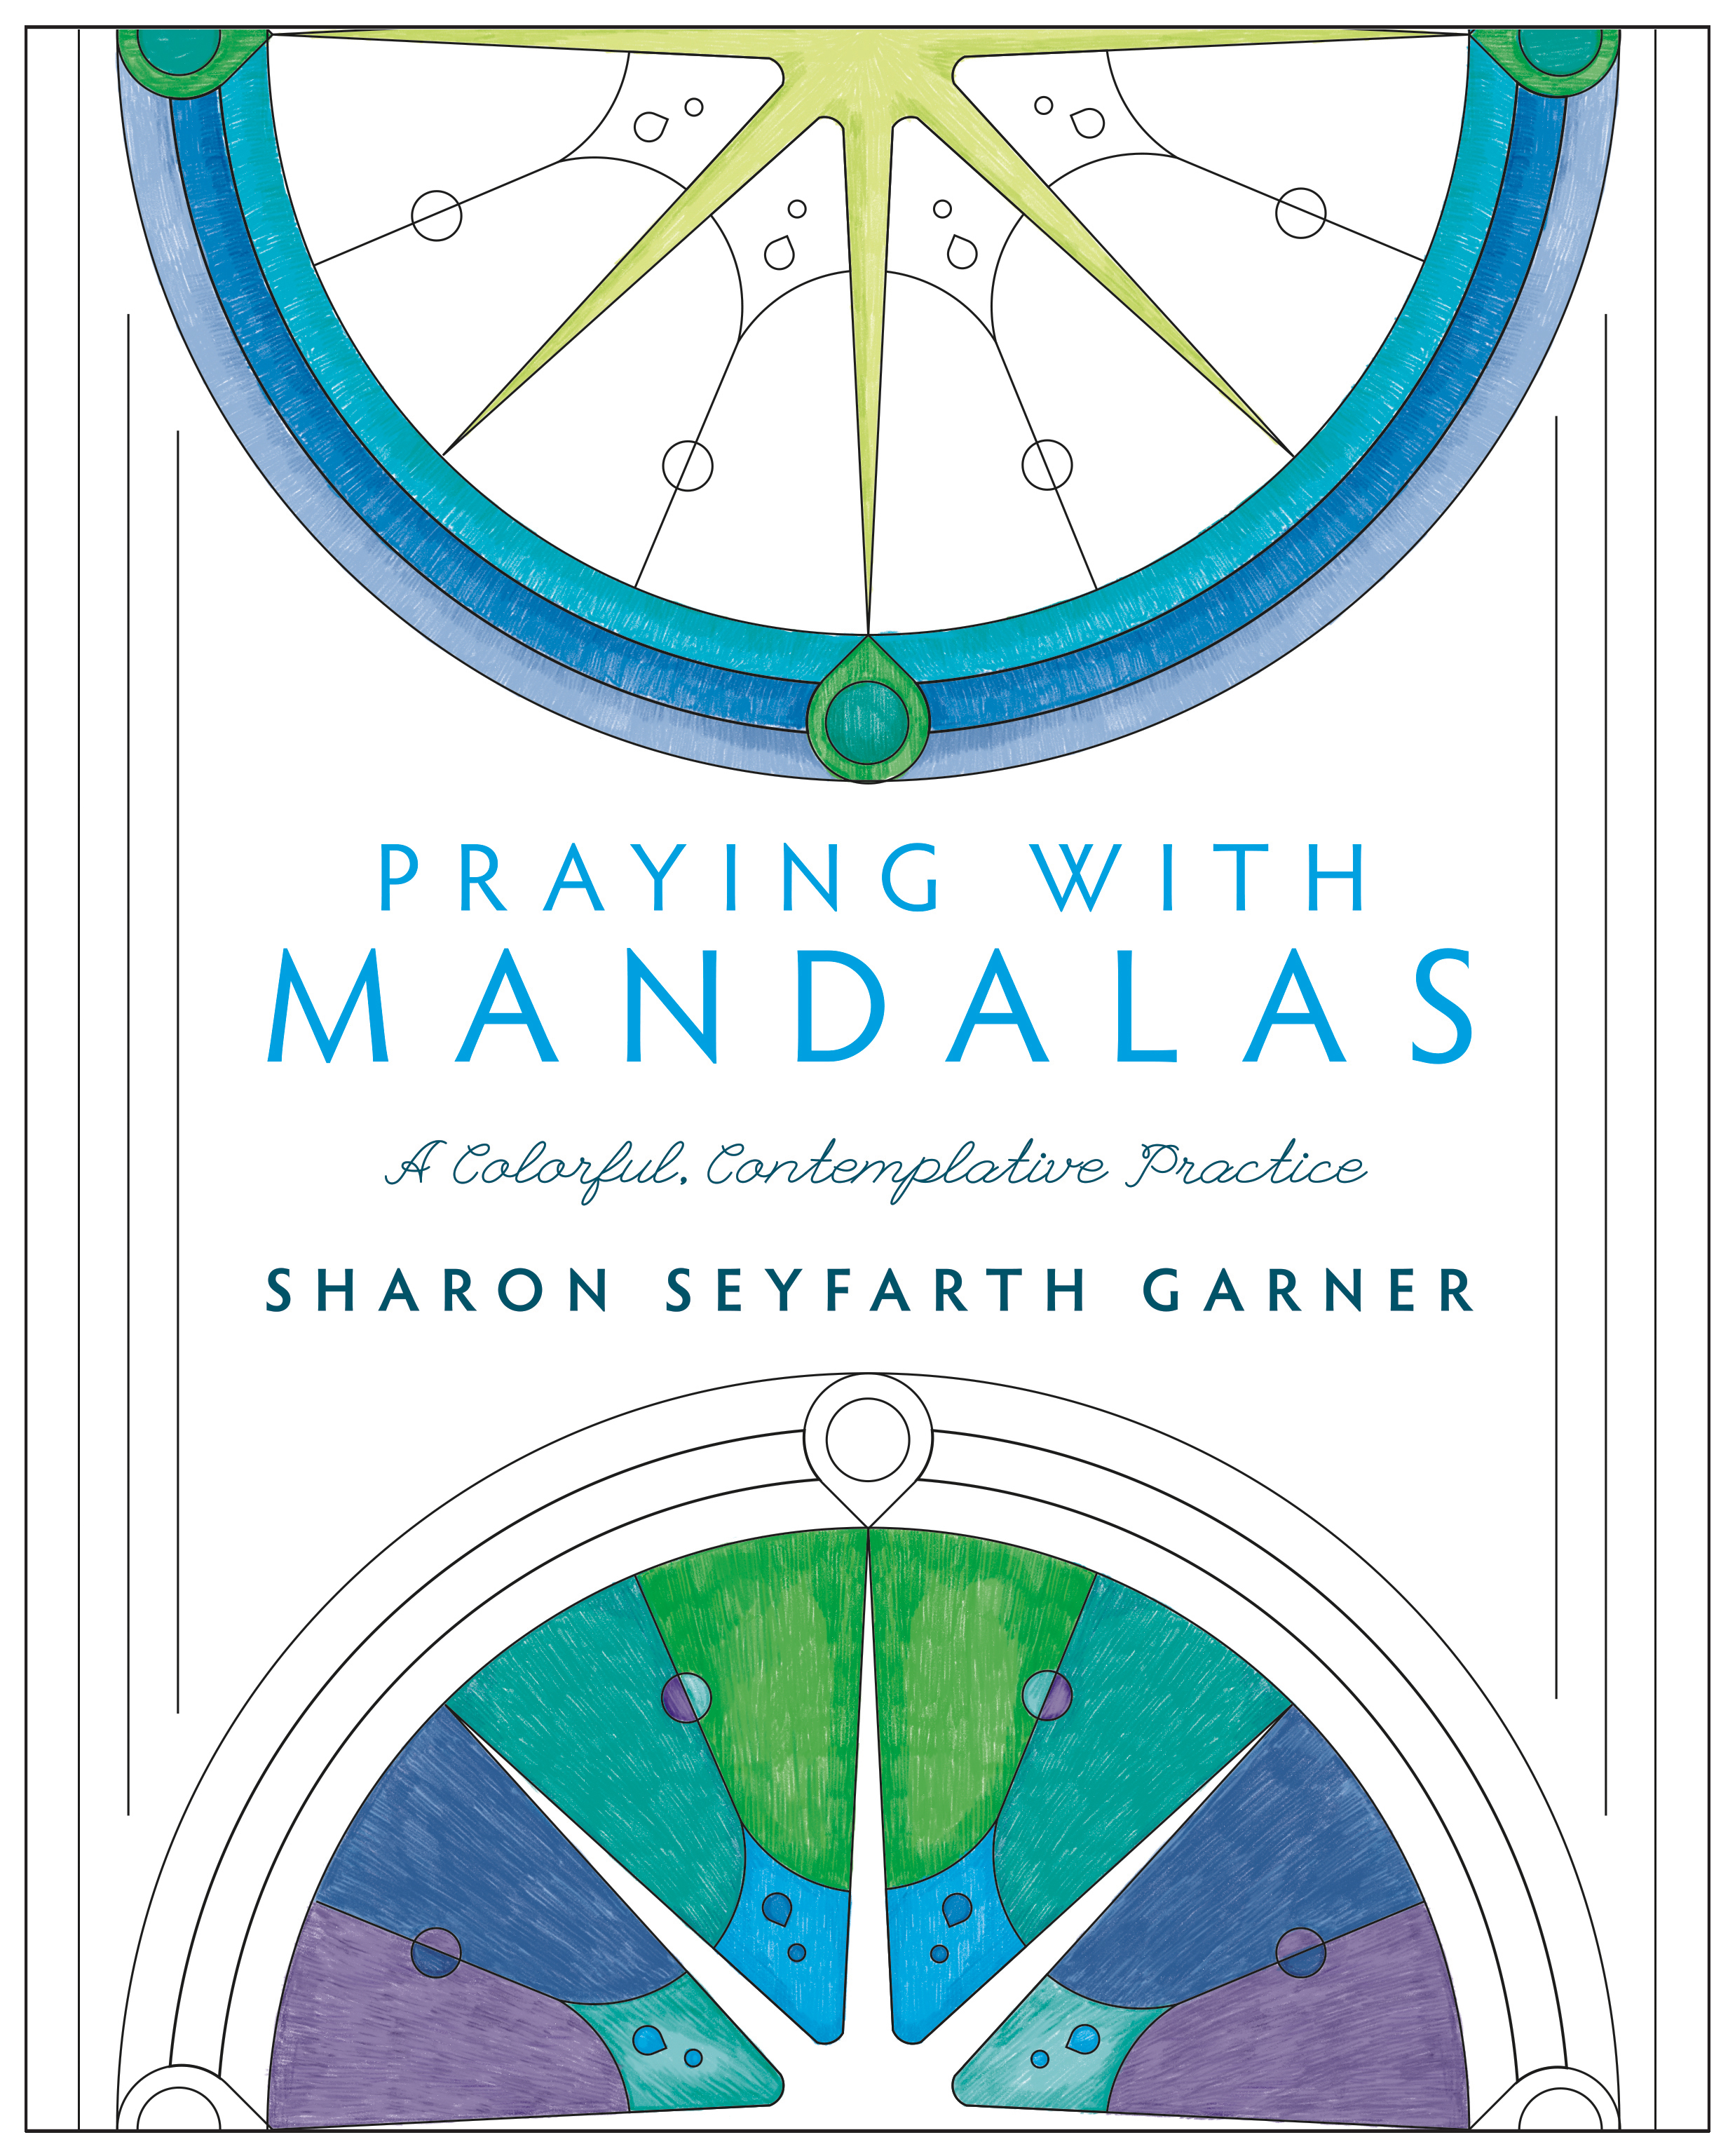 PRAYING WITH MANDALAS COVER RGB (for web).jpg